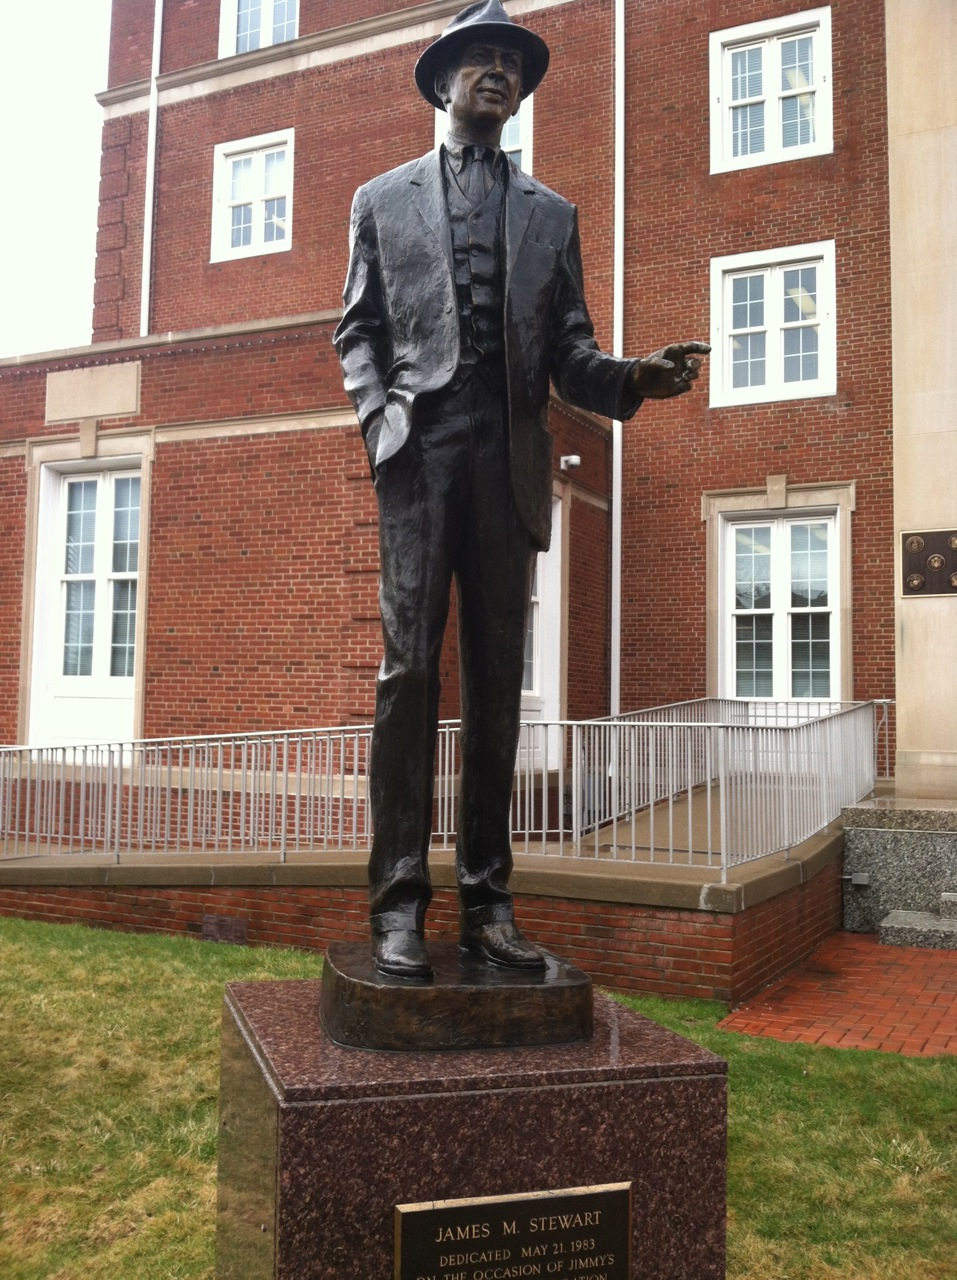 8Ten foot tall Jimmy Stewart presides over the courthouse on Philadelphia St., Indiana, PA. Personal Jimmy Stewart favorites - Philadelphia Story, Rear Window, Vertigo.